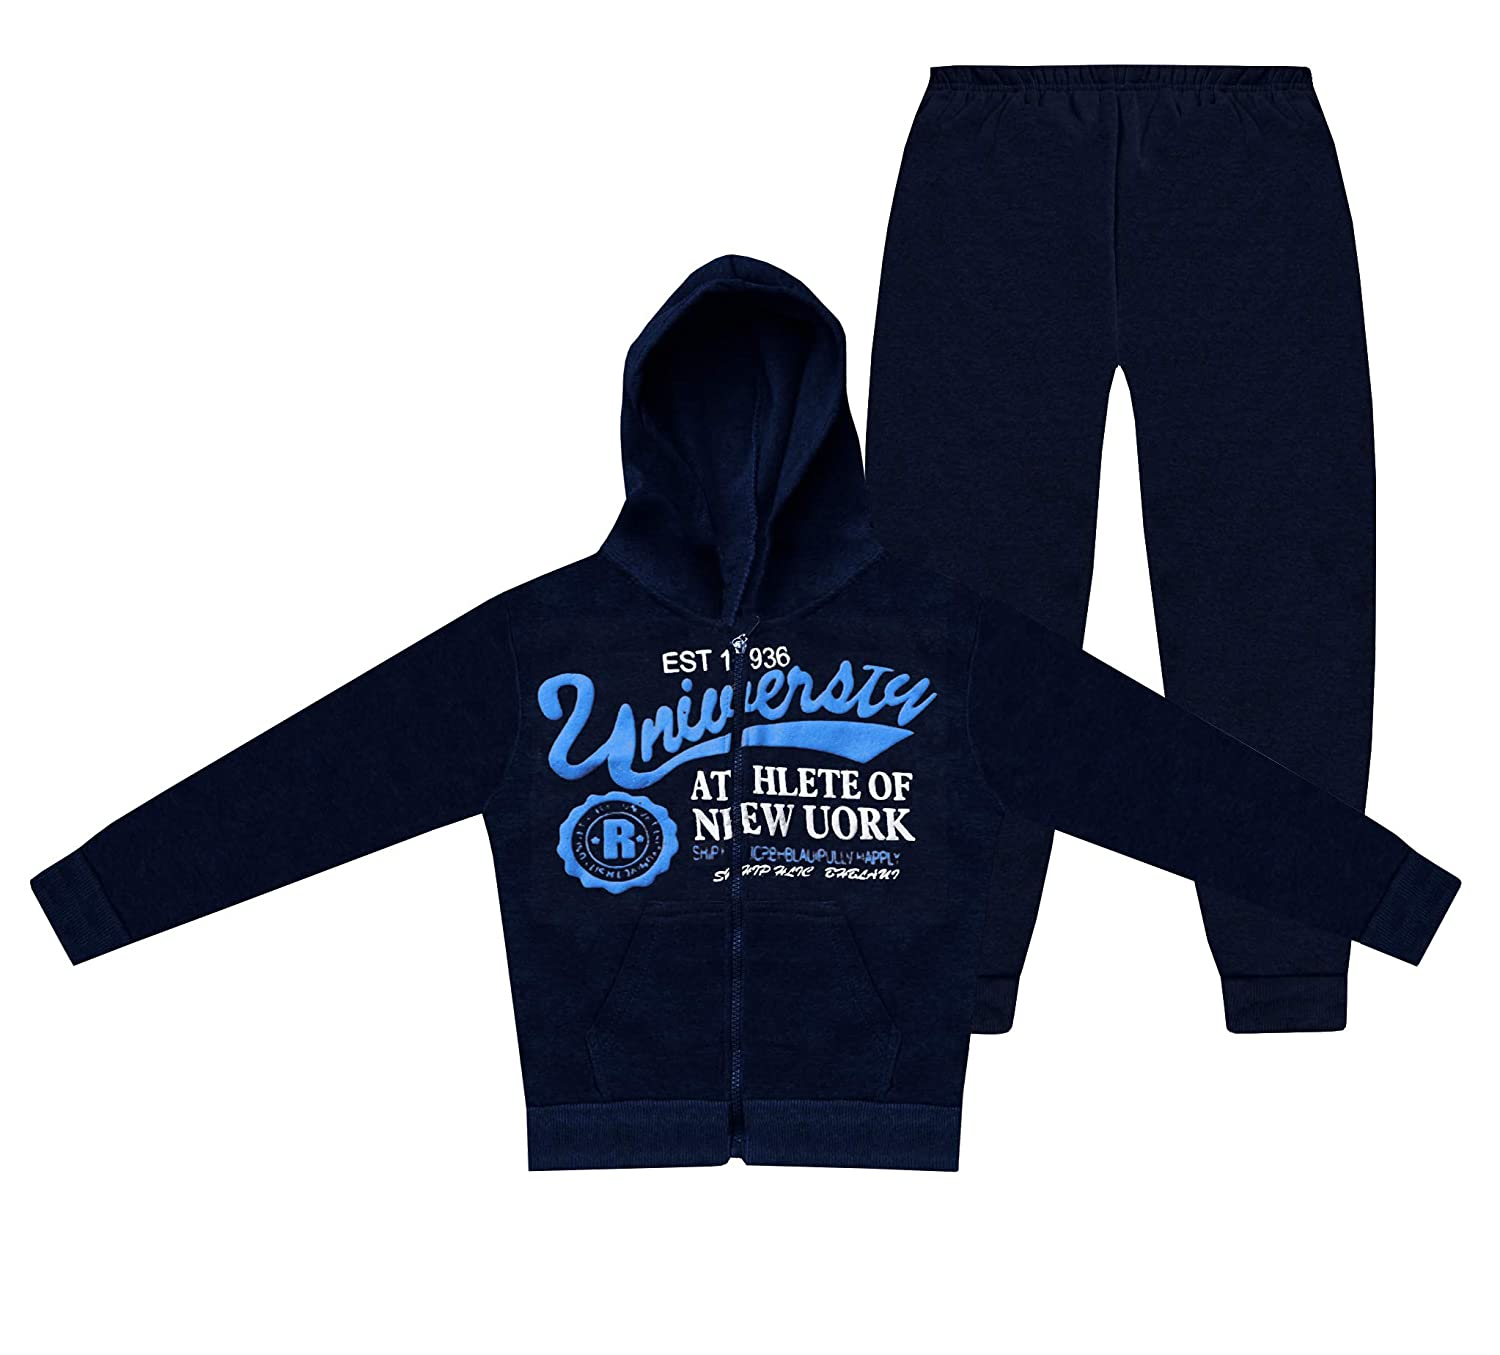 Boys Tracksuit 2 Piece Set Sportswear Kids Top Jogging Bottoms and Hoodie